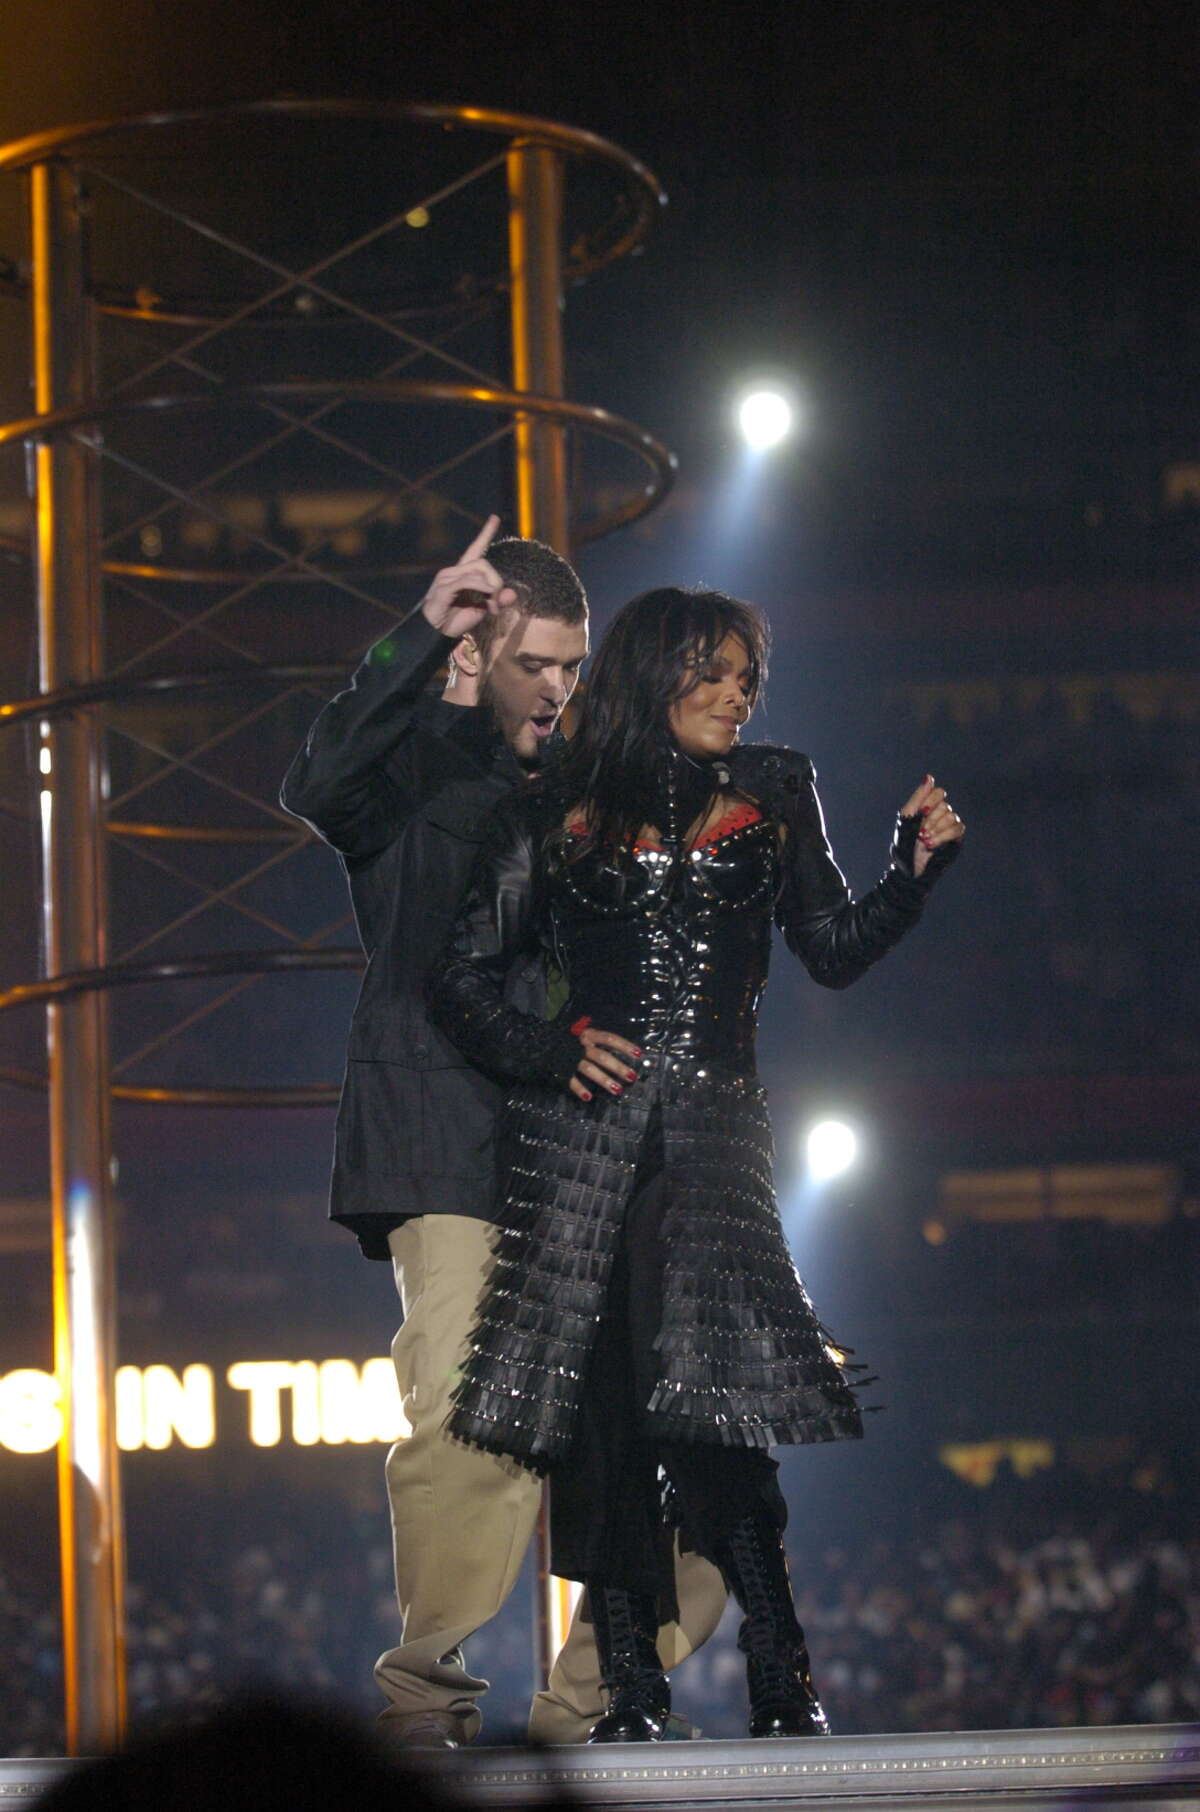 """Justin Timberlake and Janet Jackson perform for halftime at Superbowl XXXVIII Carolina Panthers and New England Patriots at Reliant Stadium 2/1/04: (Christobal Perez,Staff/Hearst Newspapers-Houston Chronicle). HOUCHRON CAPTION (01/01/2005) SECSTAR COLORFRONT: Janet Jackson's Super Bowl """"wardrobe malfunction"""" has had far reaching effects. HOUCHRON CAPTION (01/01/2005) SECSTAR COLOR: SUPER BLOOPER: Justin Timberlake and Janet Jackson made Super Bowl - and broadcast - history last February."""